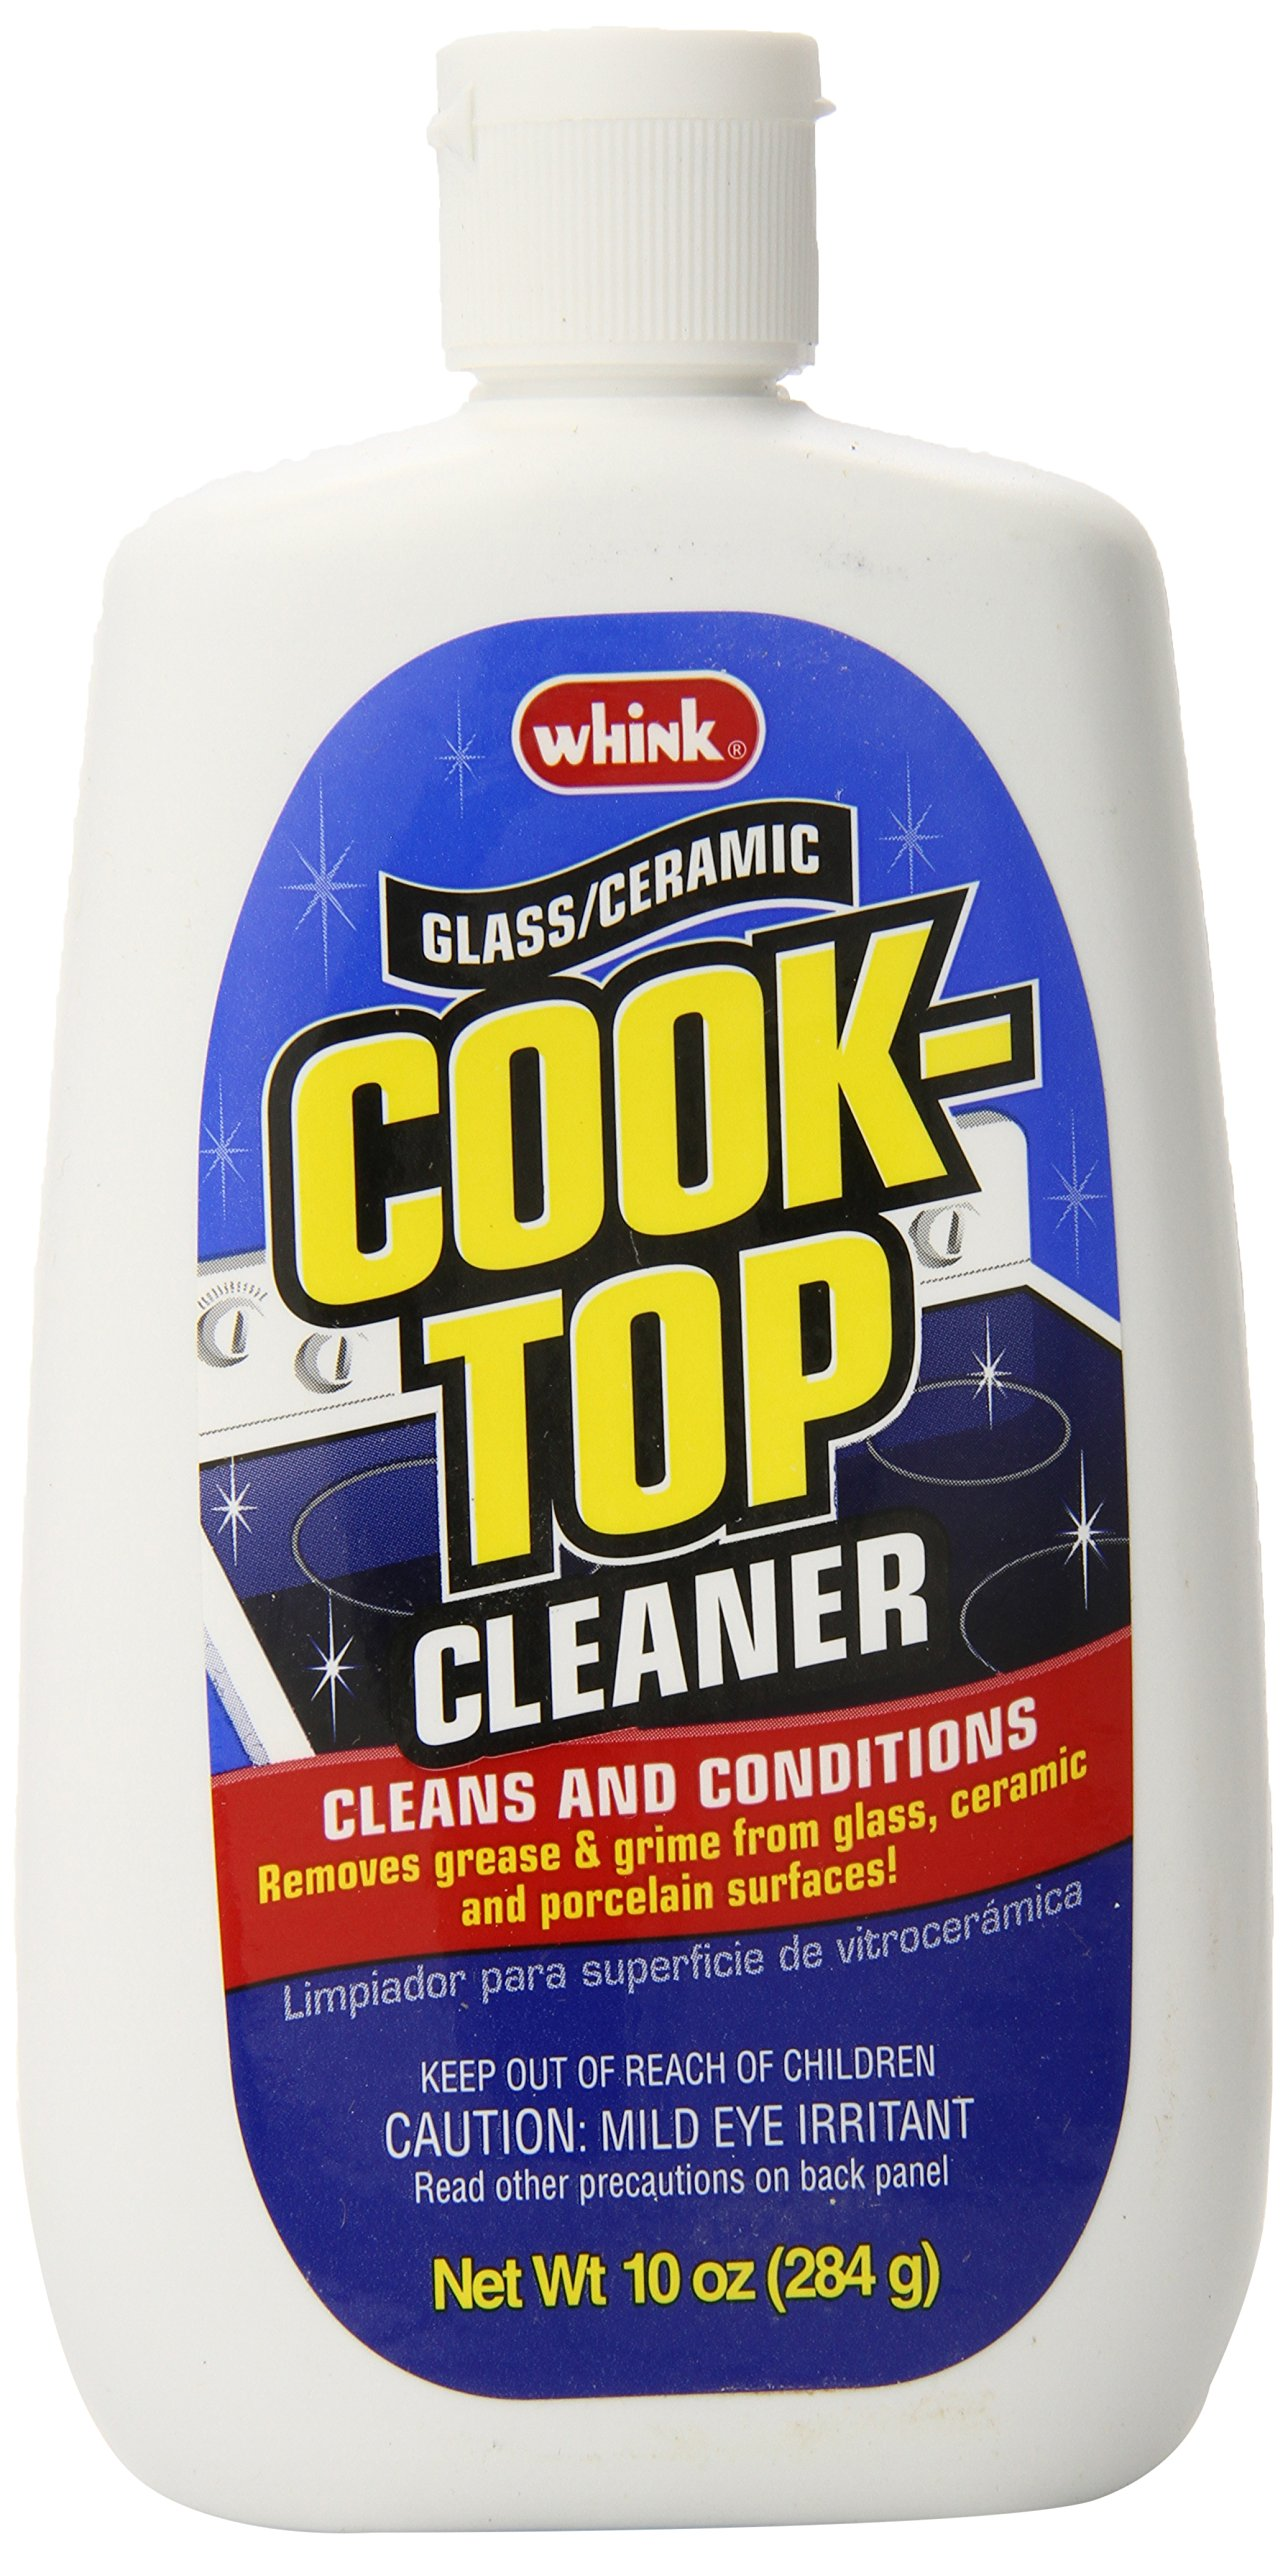 Whink Glass/Ceramic Cooktop Cleaner, 10-Ounce Bottle (Pack of 6)